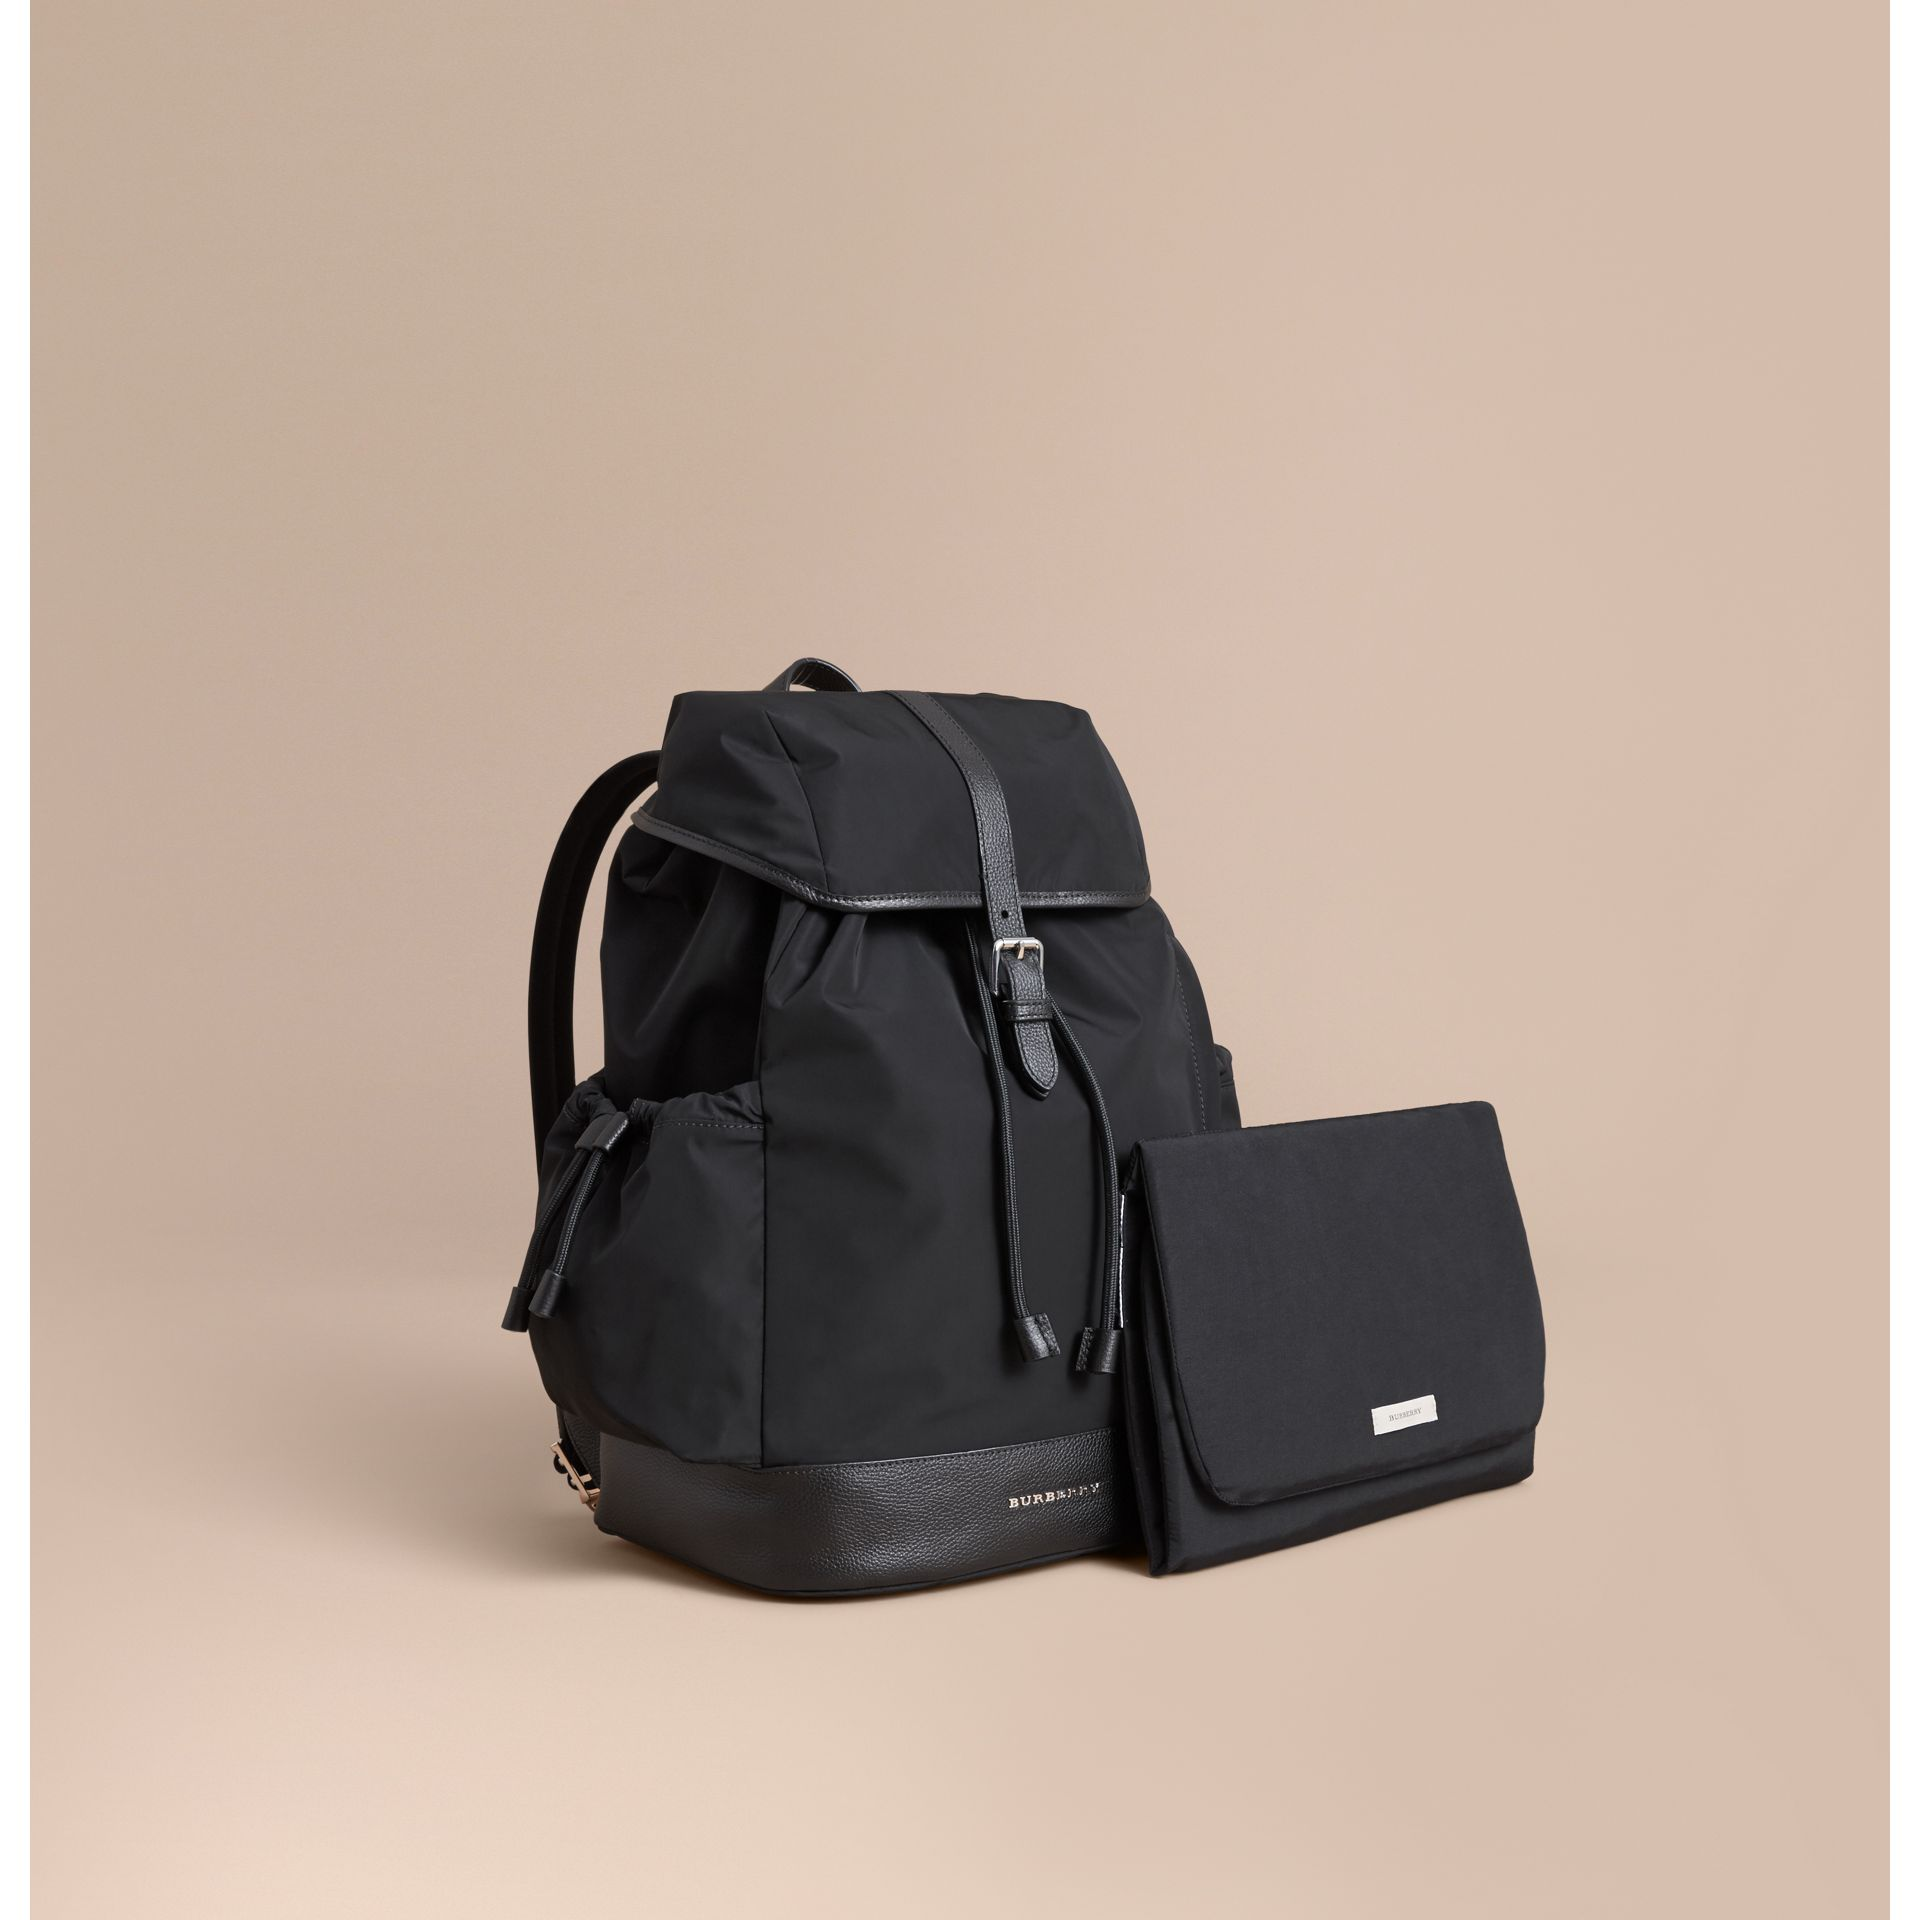 Leather Trim Baby Changing Rucksack in Black | Burberry Australia - gallery image 1